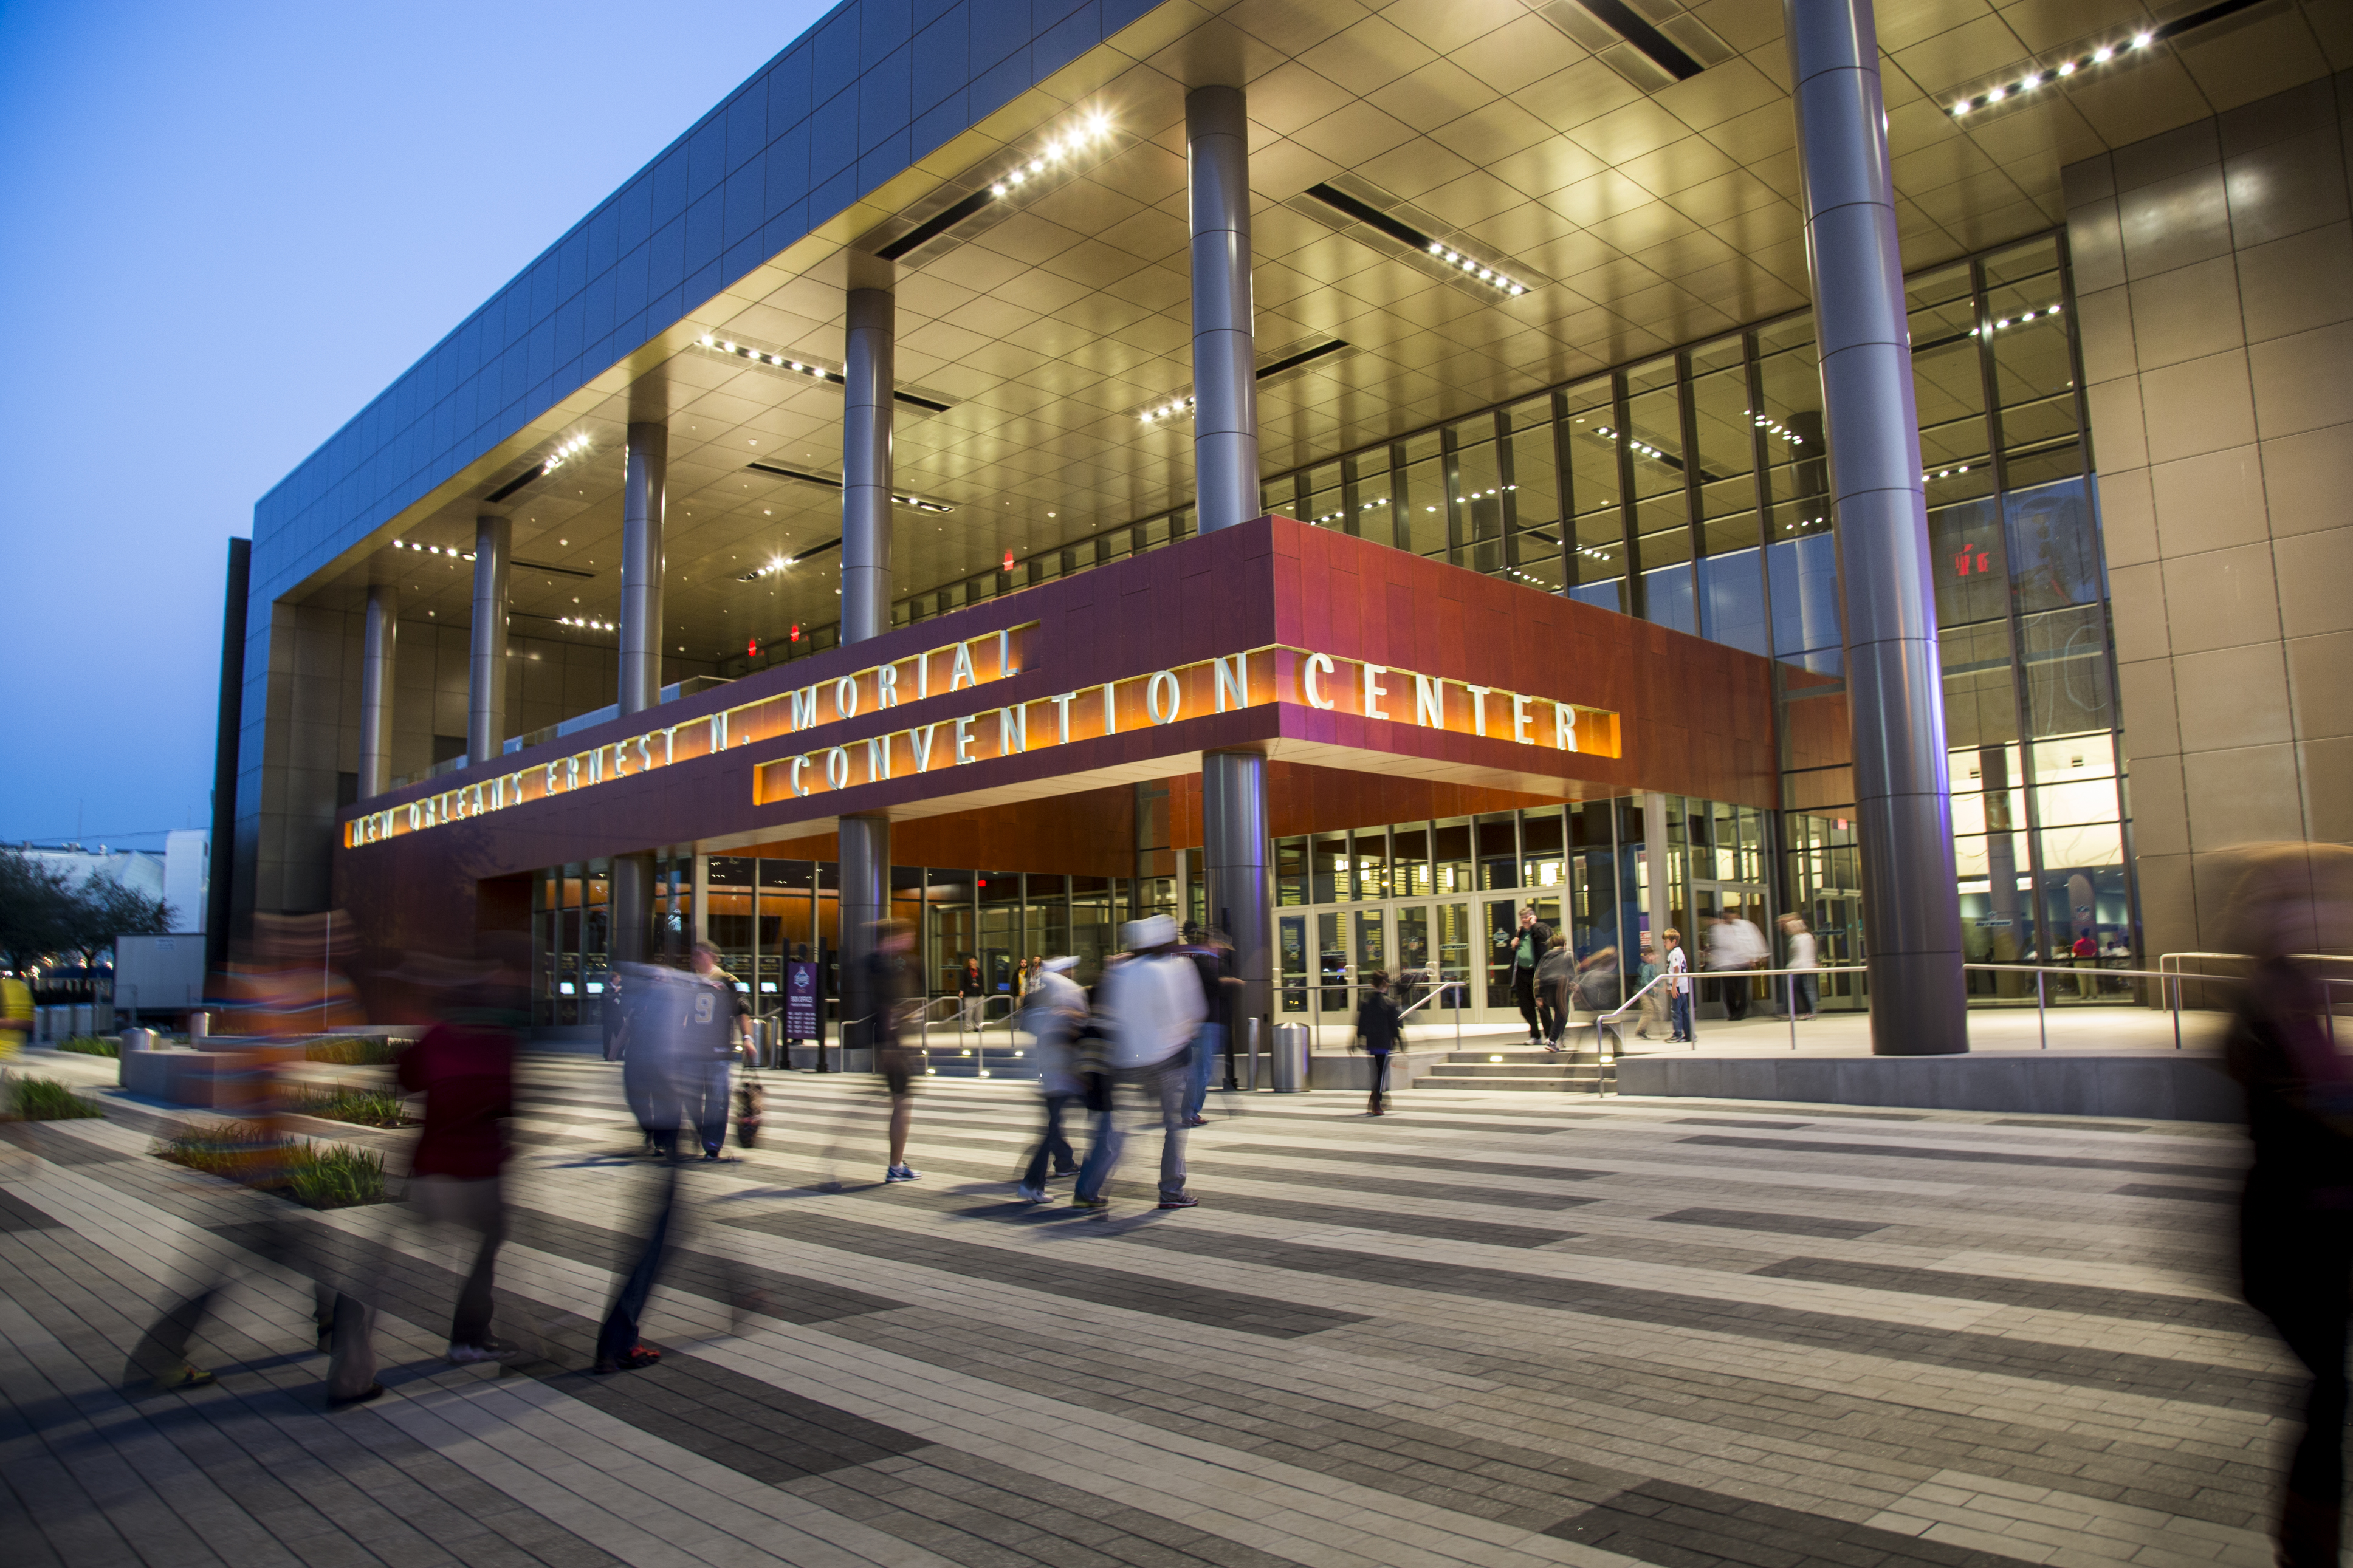 New Orleans Ernest N Morial Convention Center